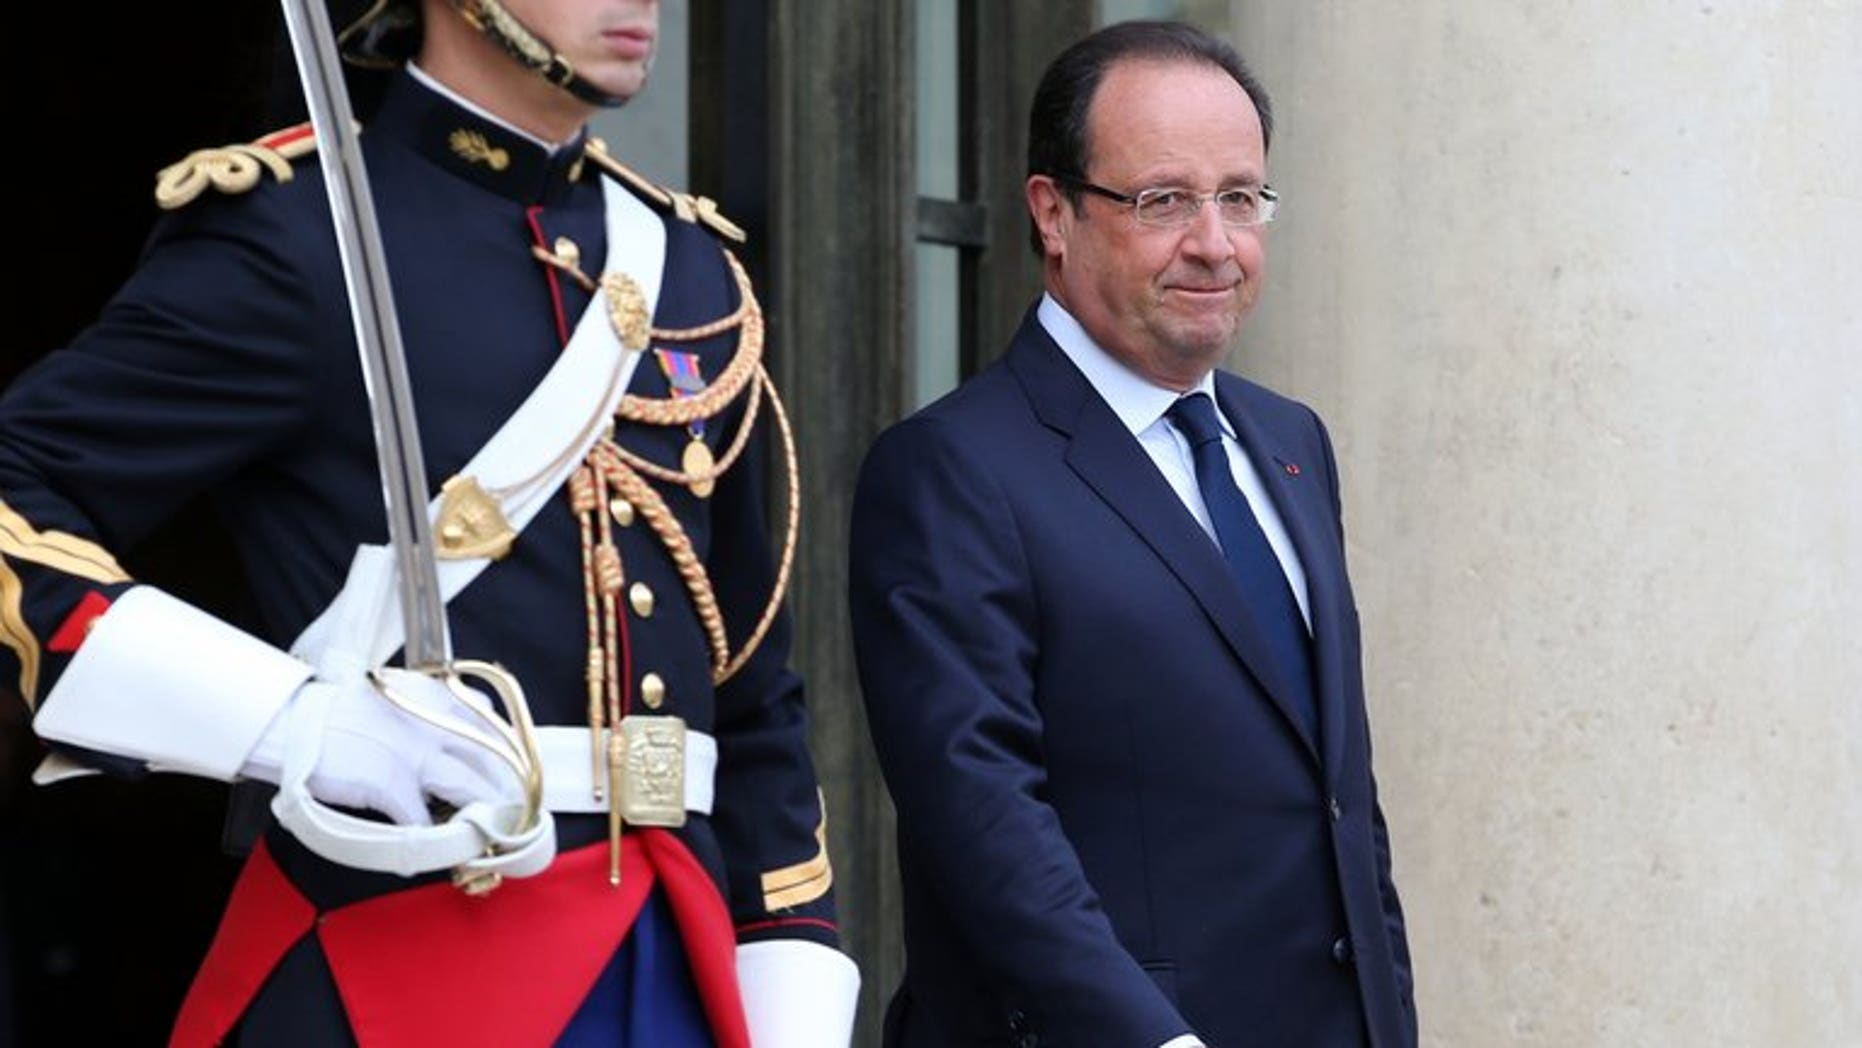 French President Francois Hollande is seen at the Elysee presidential Palace on September 17, 2013 in Paris, France.